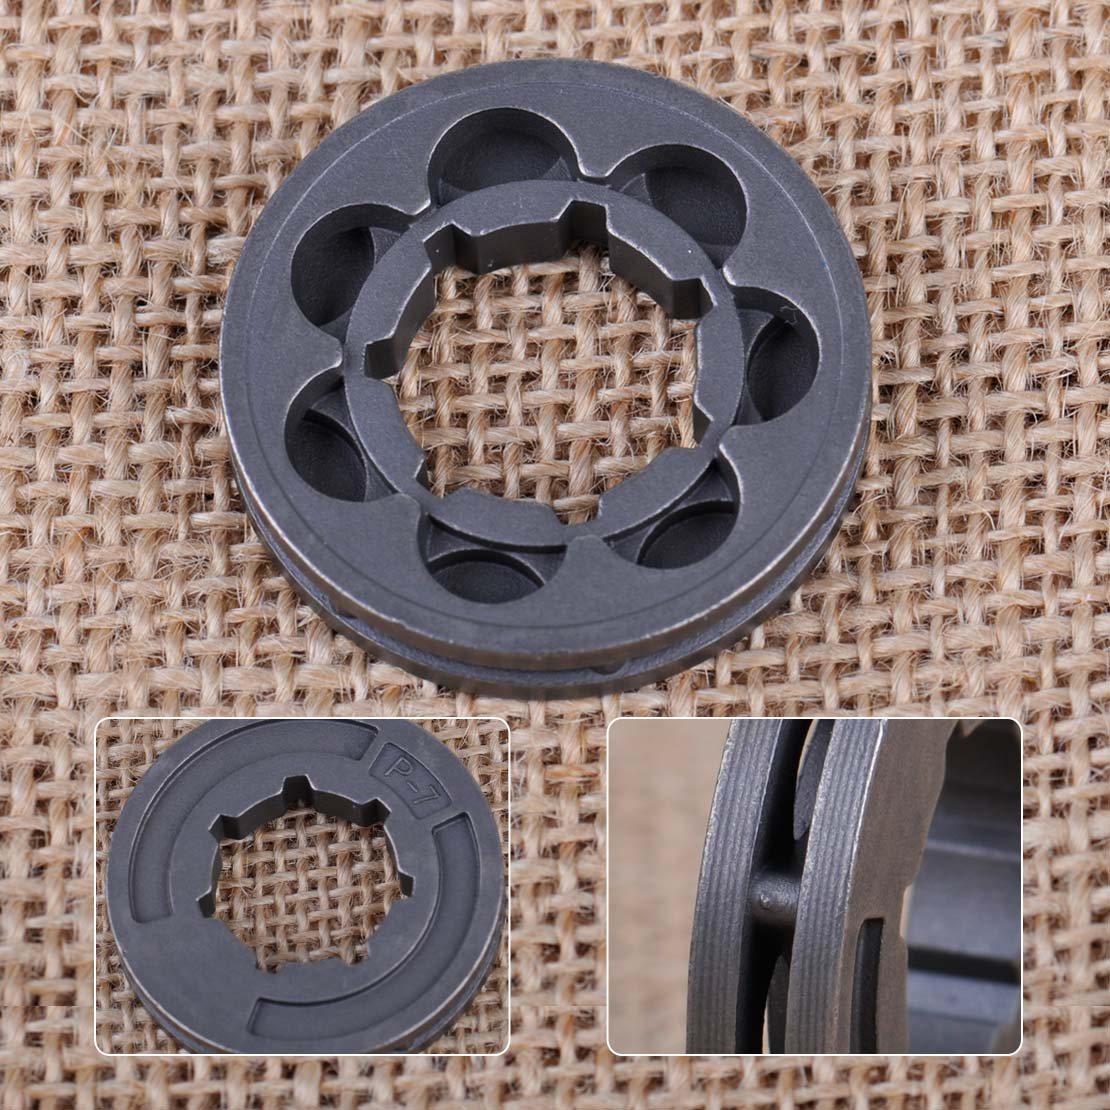 LETAOSK P-7 7 Teeth Rim Sprocket Fit For Stihl 017 018 021 023 MS170 MS180 MS250 MS251 Chainsaw